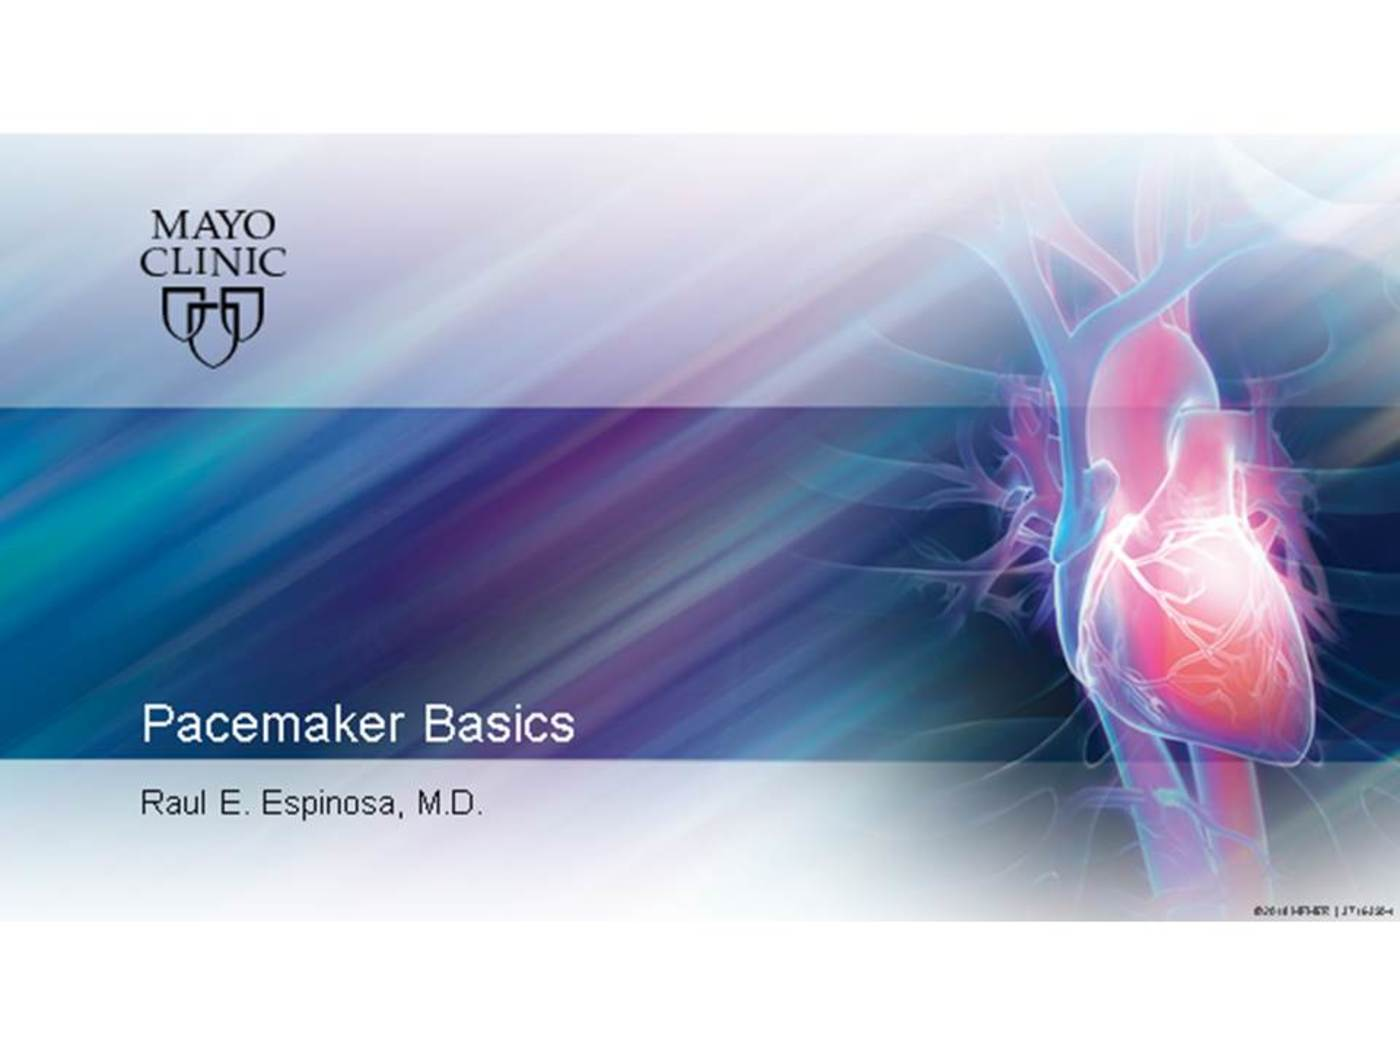 Pacemaker Basics